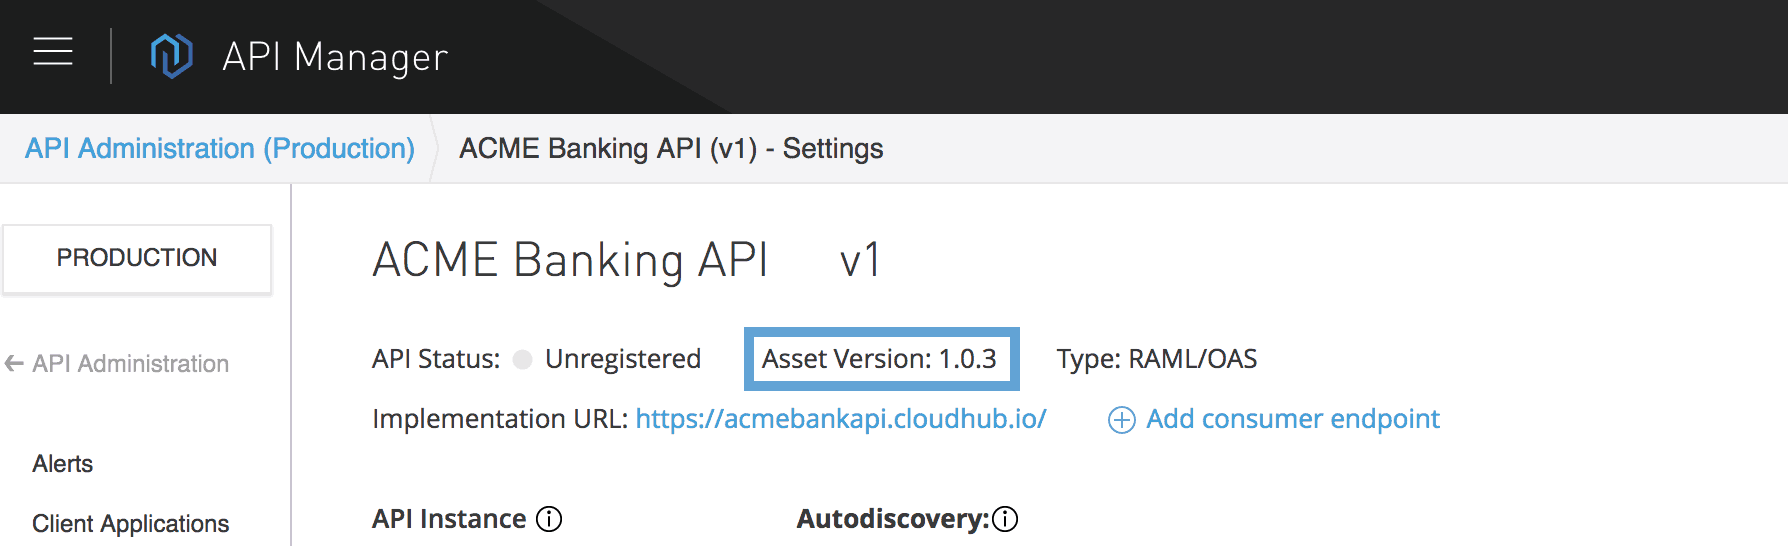 What's new with API Manager in the Nov '17 release | MuleSoft Blog